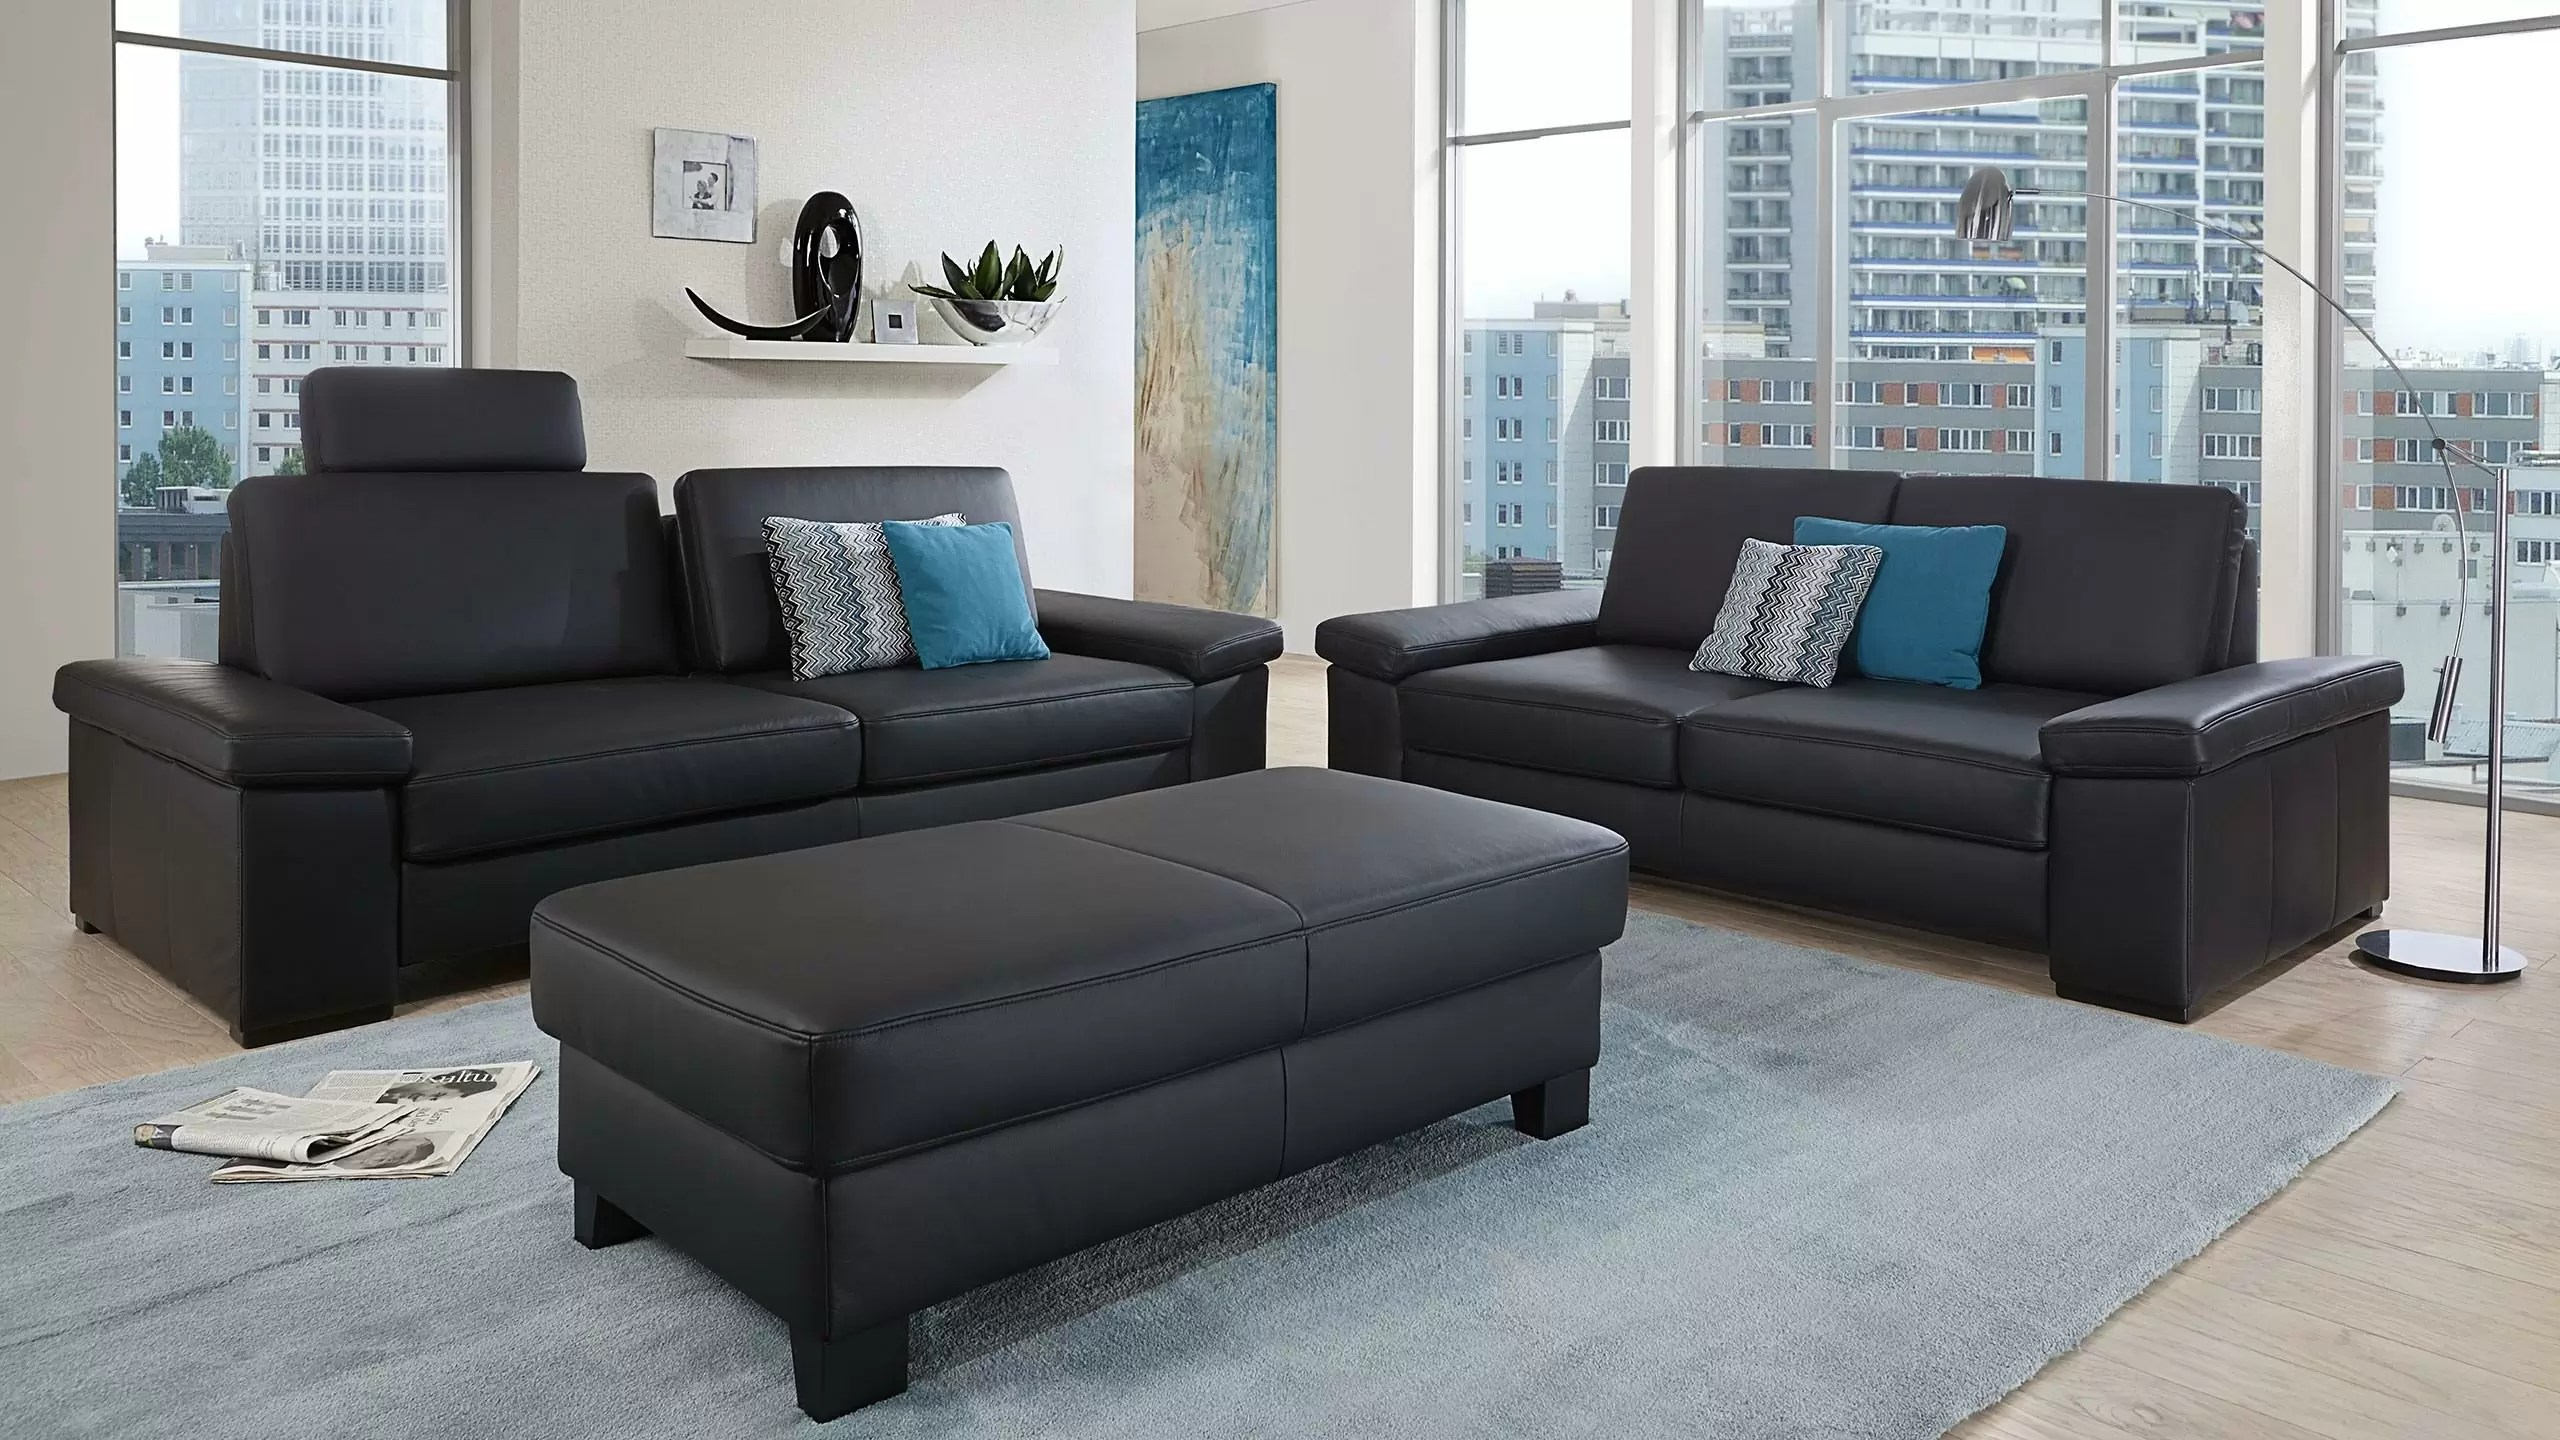 Couchgarnituren In Leder Clou Sofa Multipolster